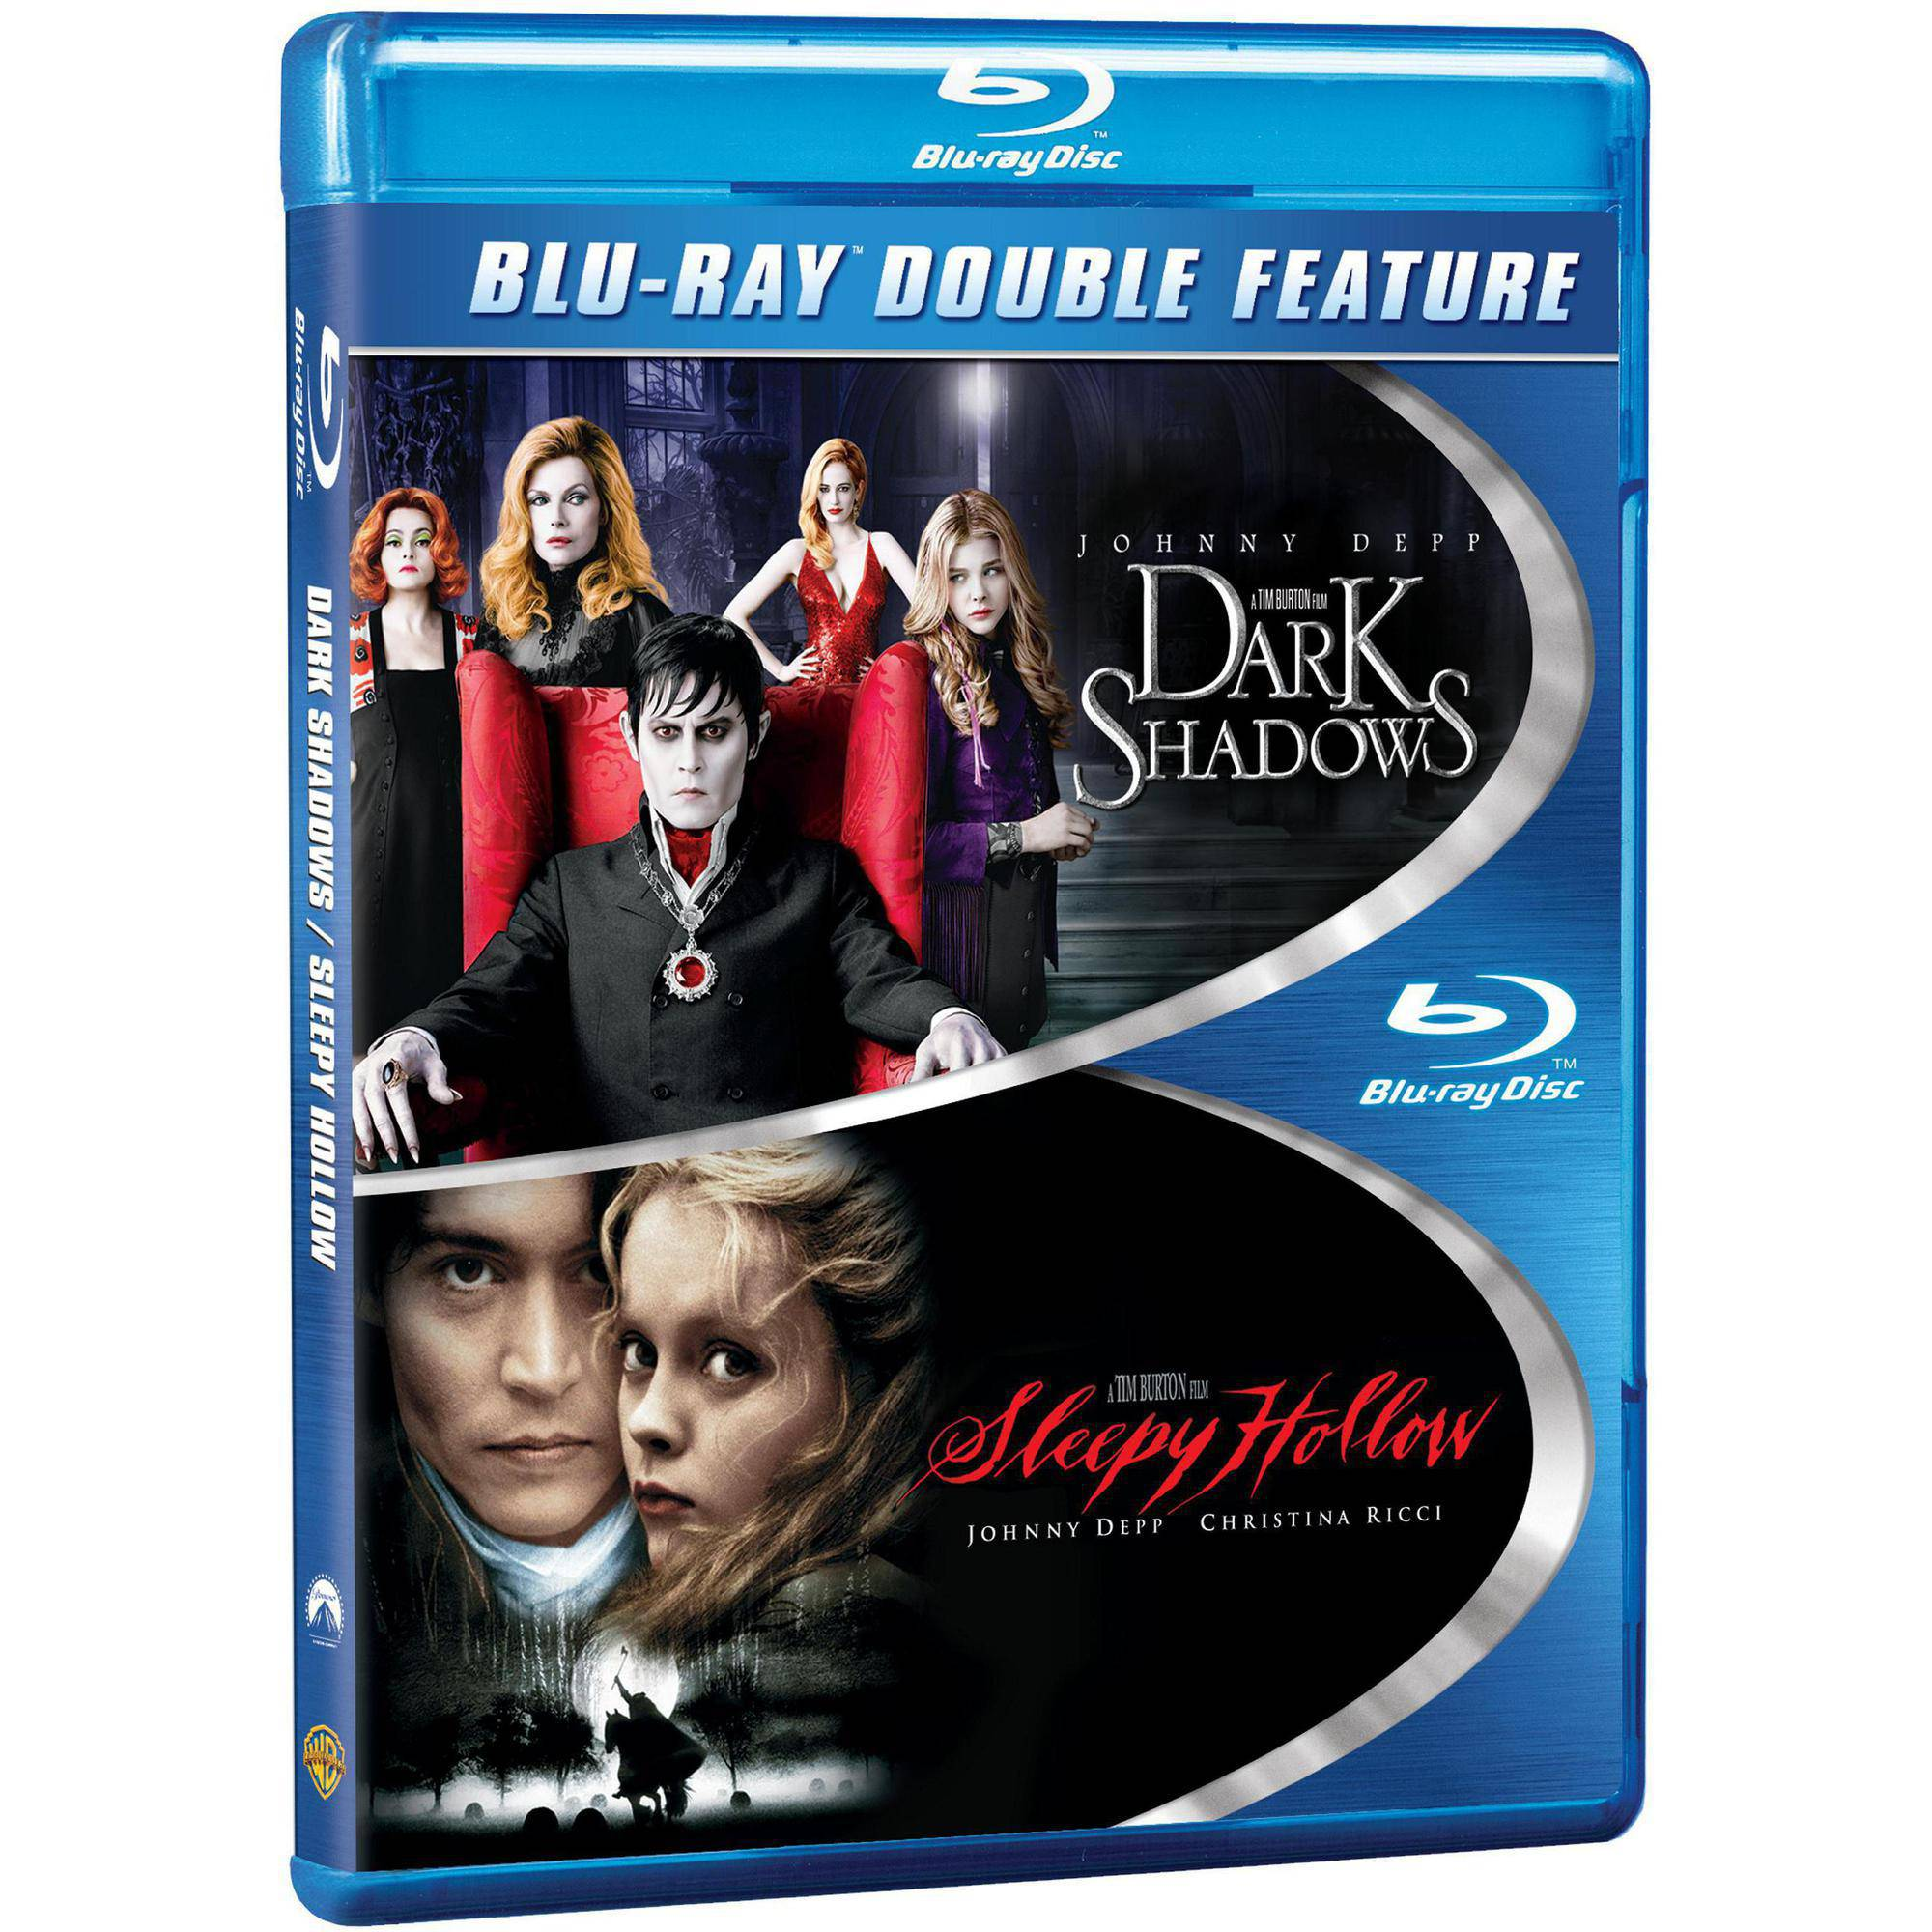 Dark Shadows / Sleepy Hollow (Blu-ray) (Widescreen)